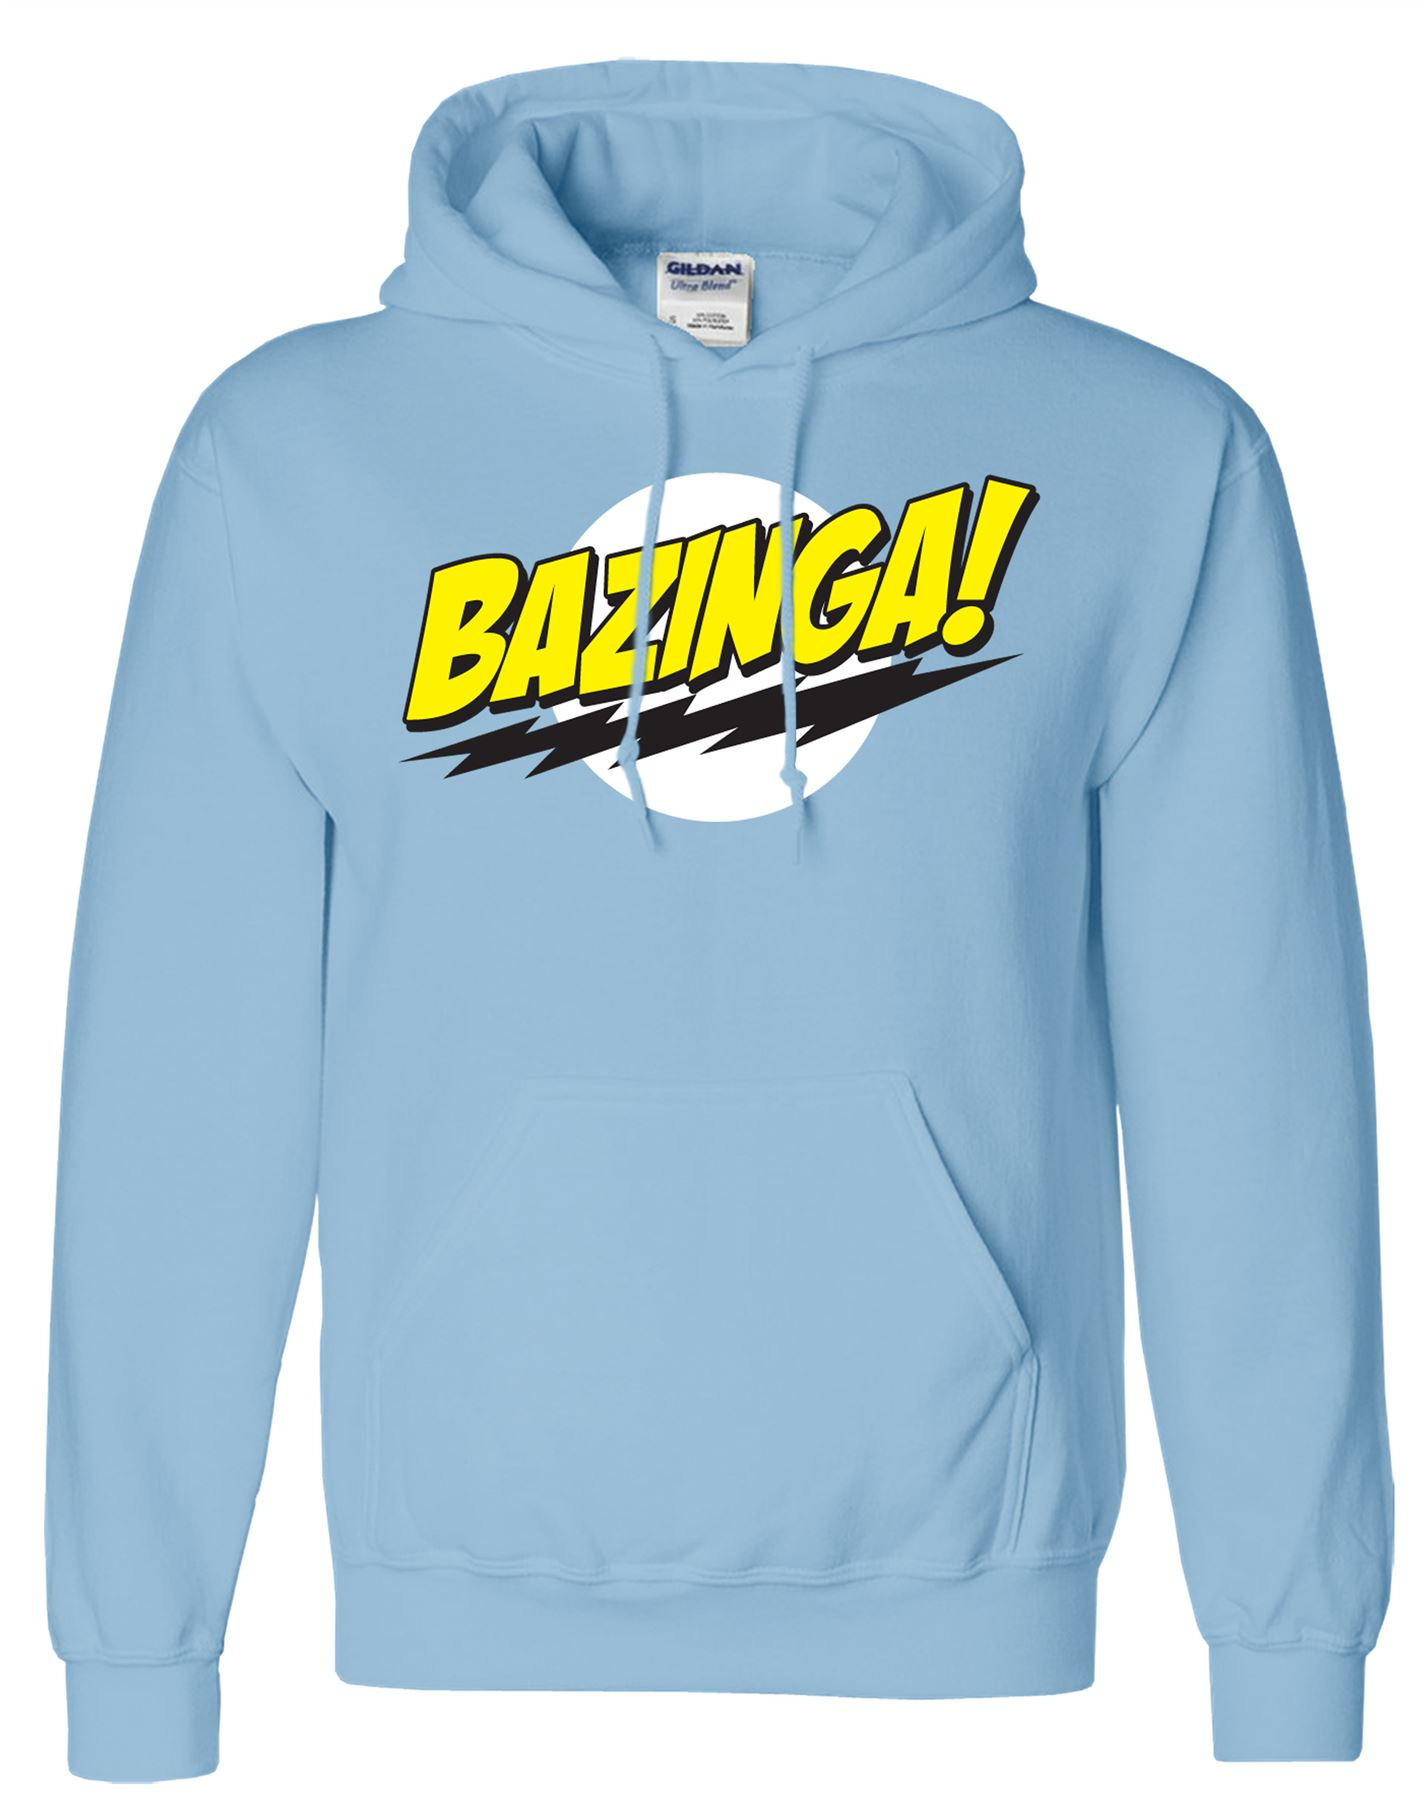 Mens-Bazinga-Hoodie-Hooded-Sweatshirt-Pullover-Sweat-Hoody-Jumper-Sports-Casual